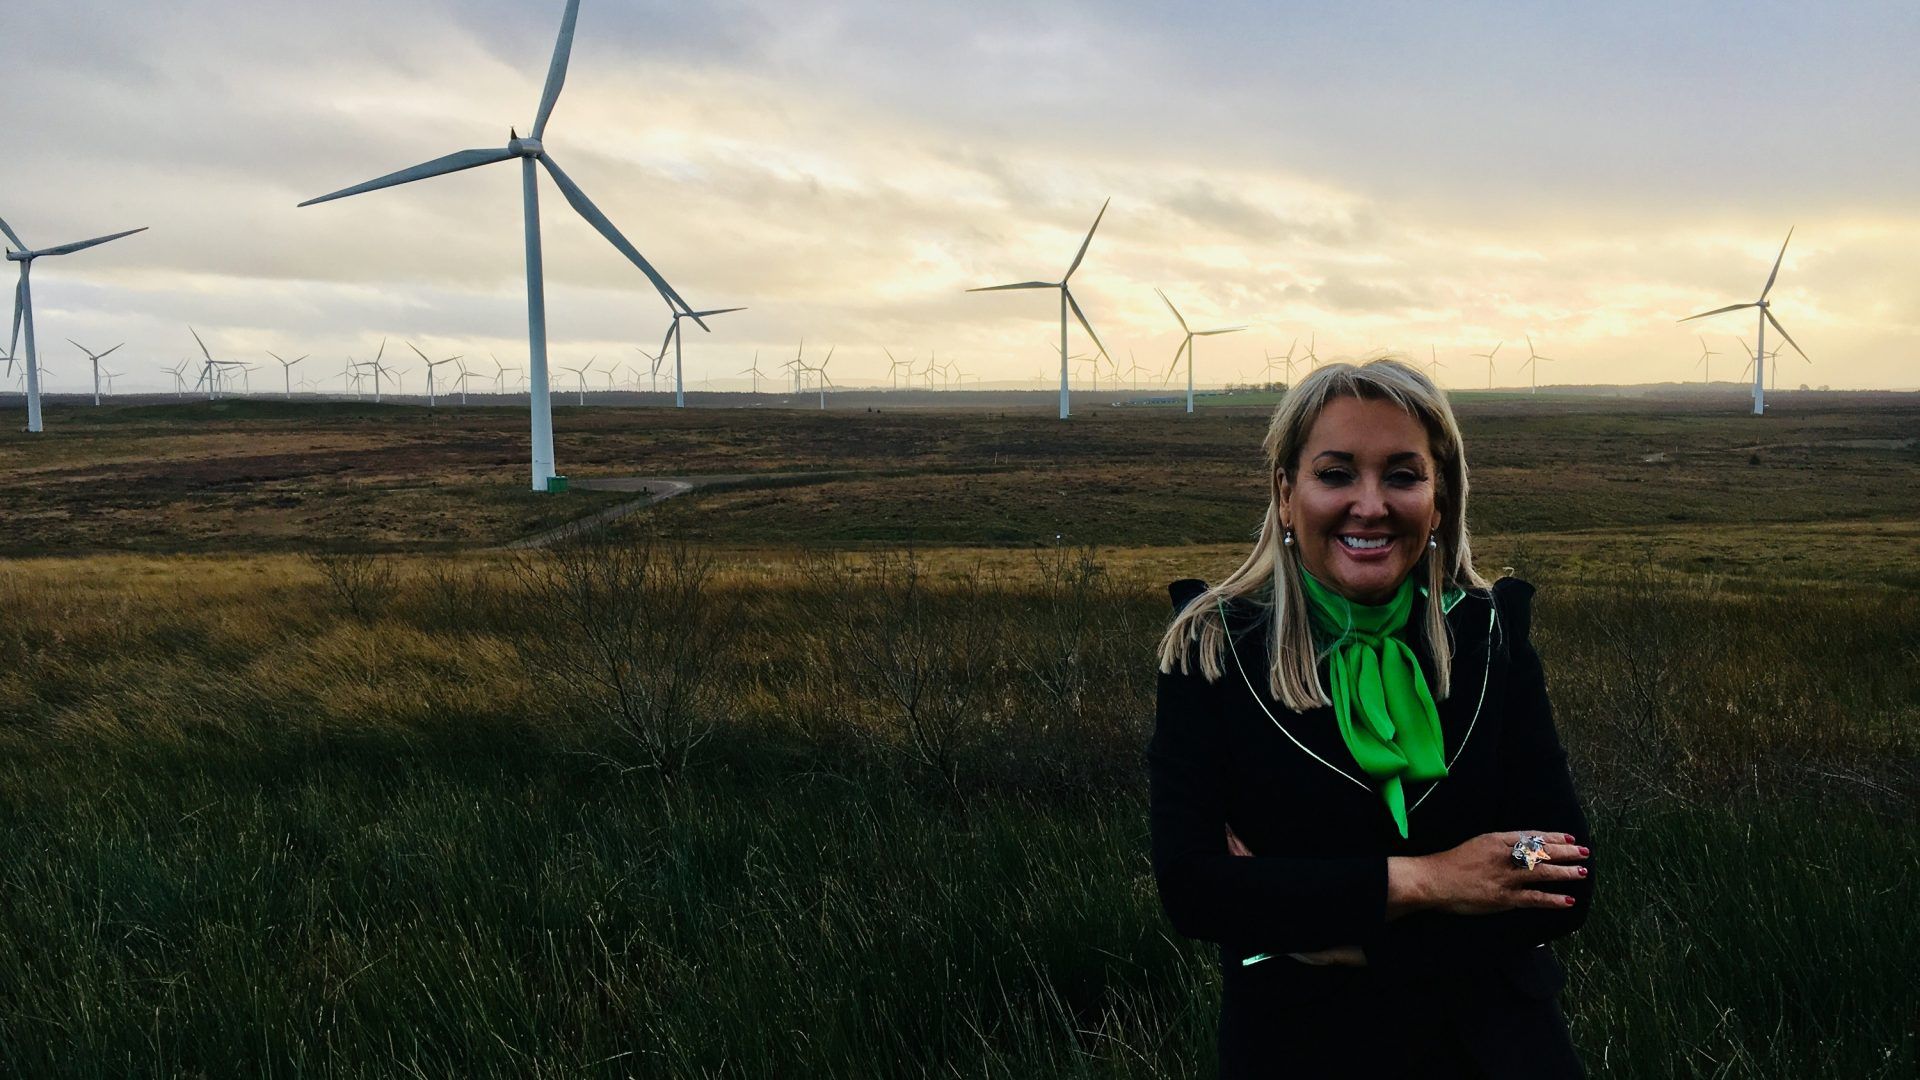 Marie Macklin tours the Scottish Power Renewables Whitelee Wind Farm